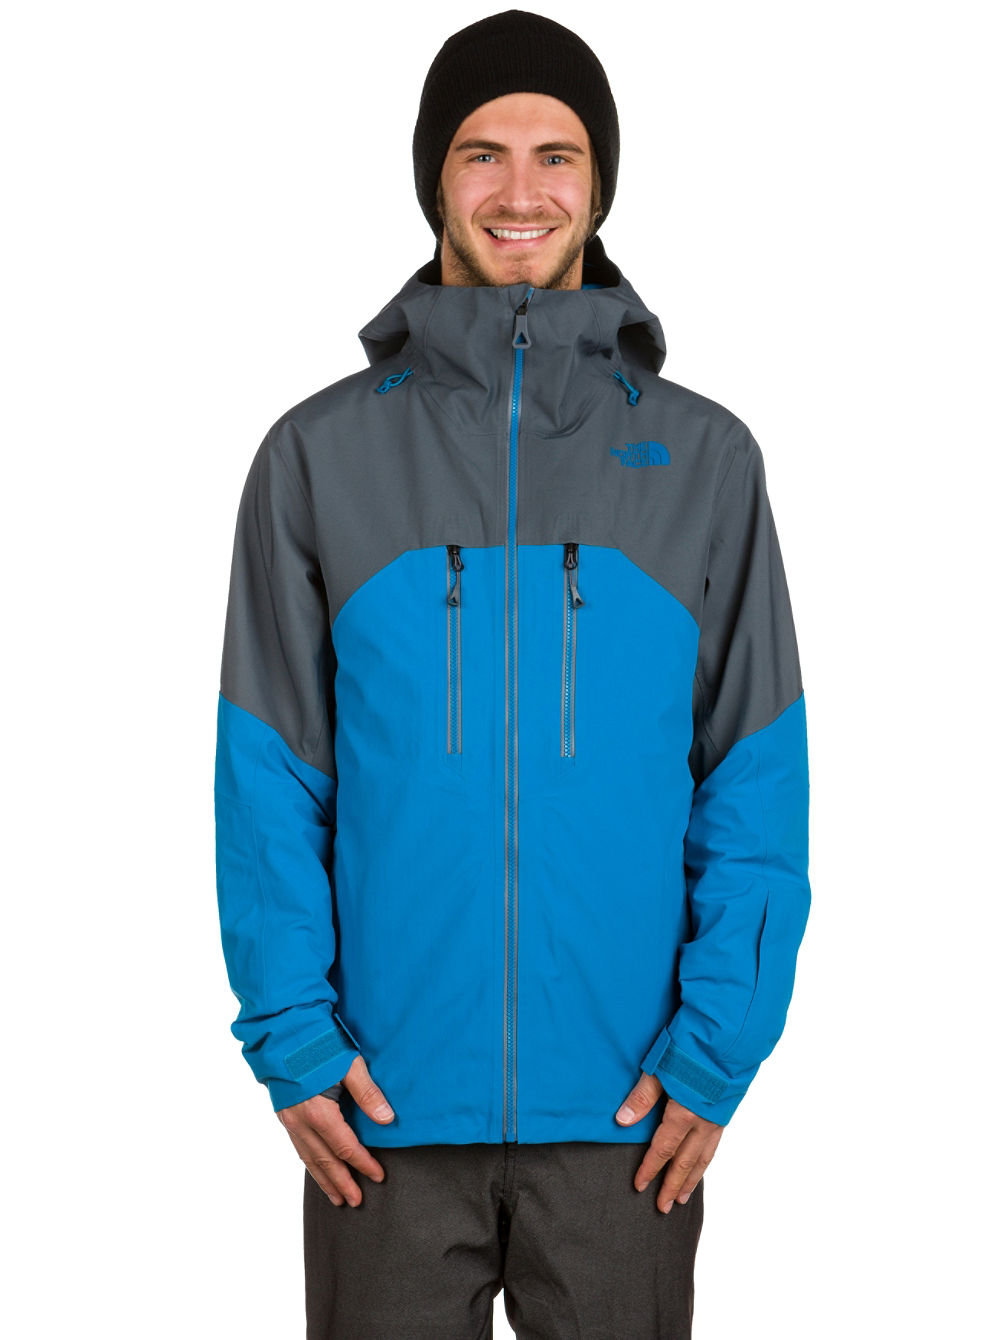 c864a7c3ff Buy THE NORTH FACE Powder Guide Jacket online at Blue Tomato